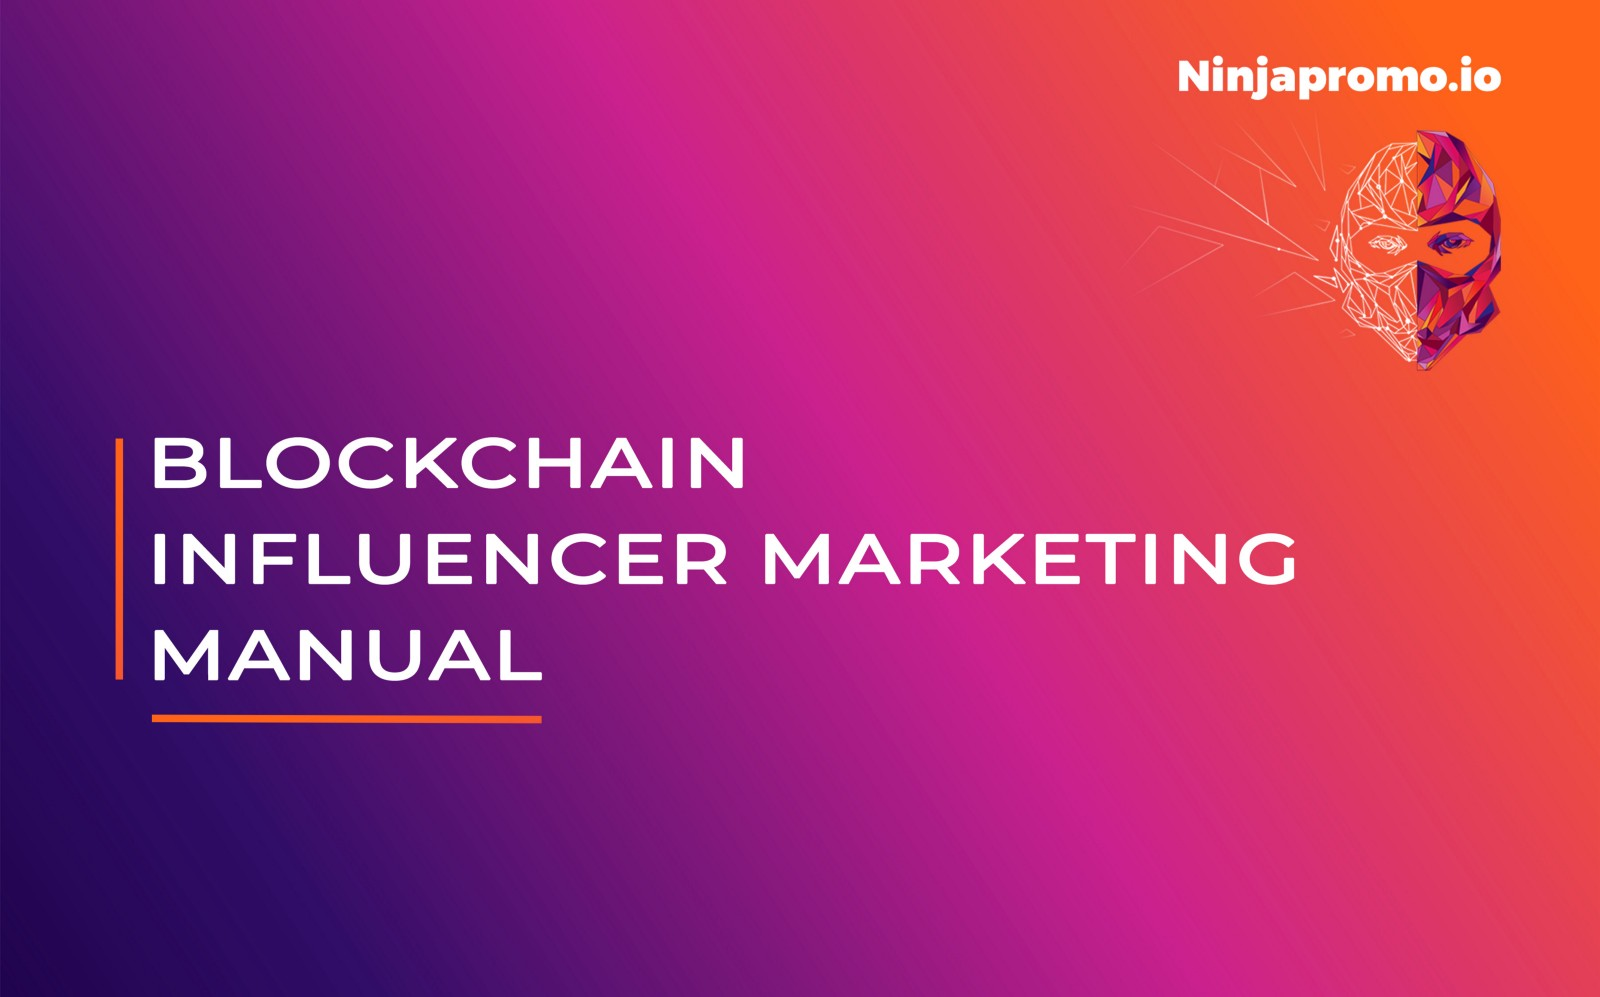 The Blockchain Influencer Marketing Manual - By NinjaPromo